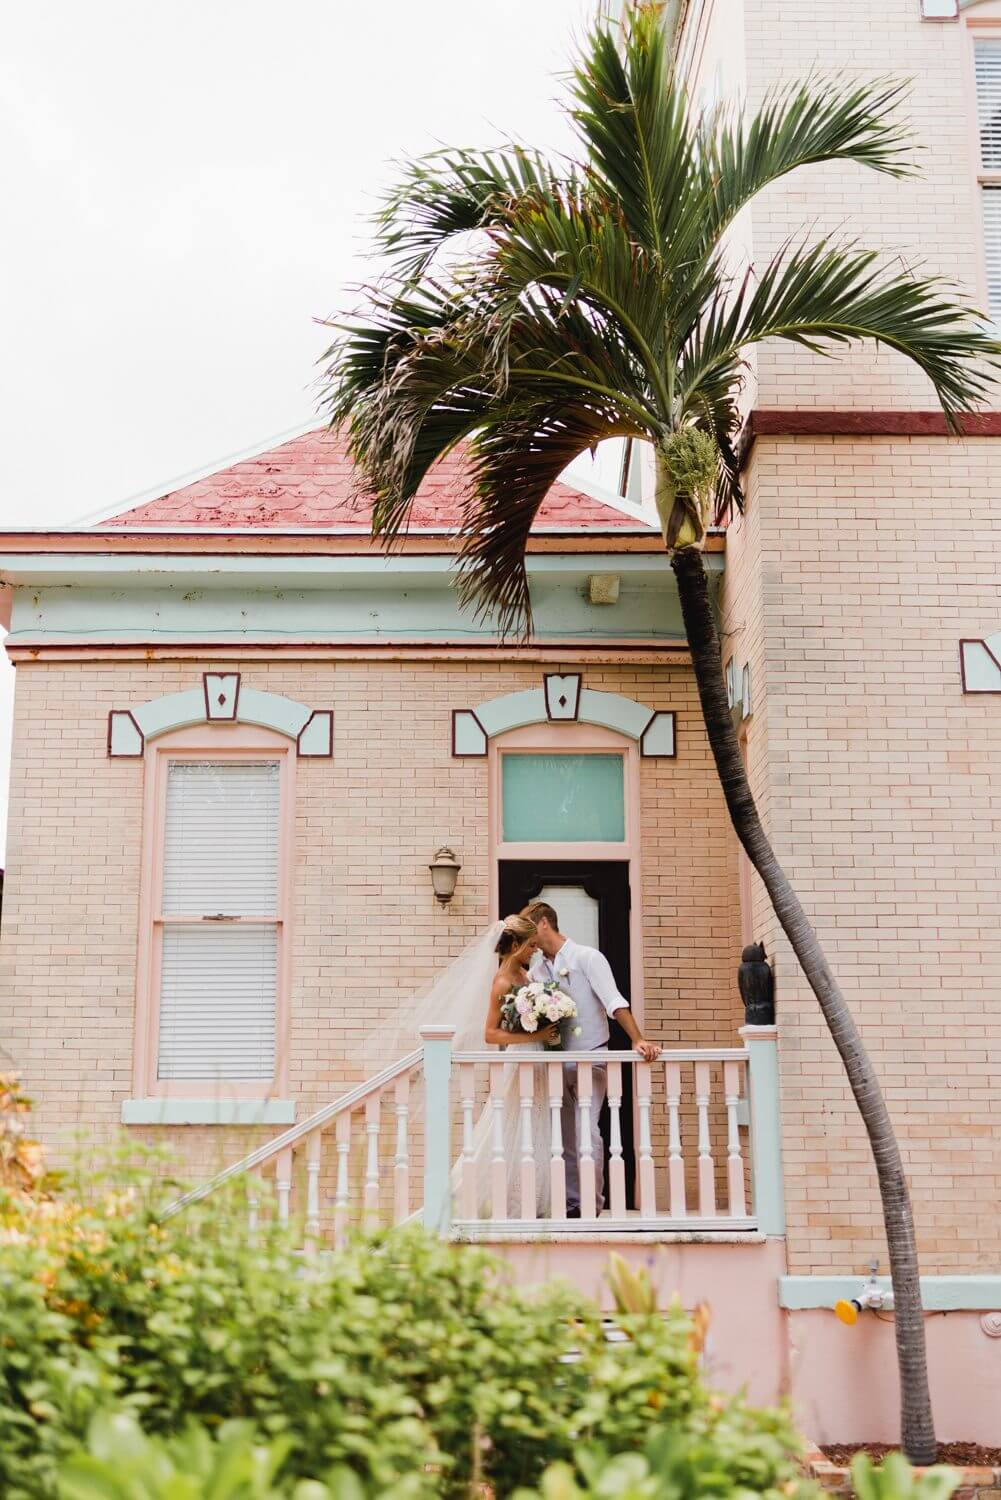 Freas Photography Southernmost House Wedding 55 - Boho Styled Key West Wedding at the Southernmost House in Key West, Florida